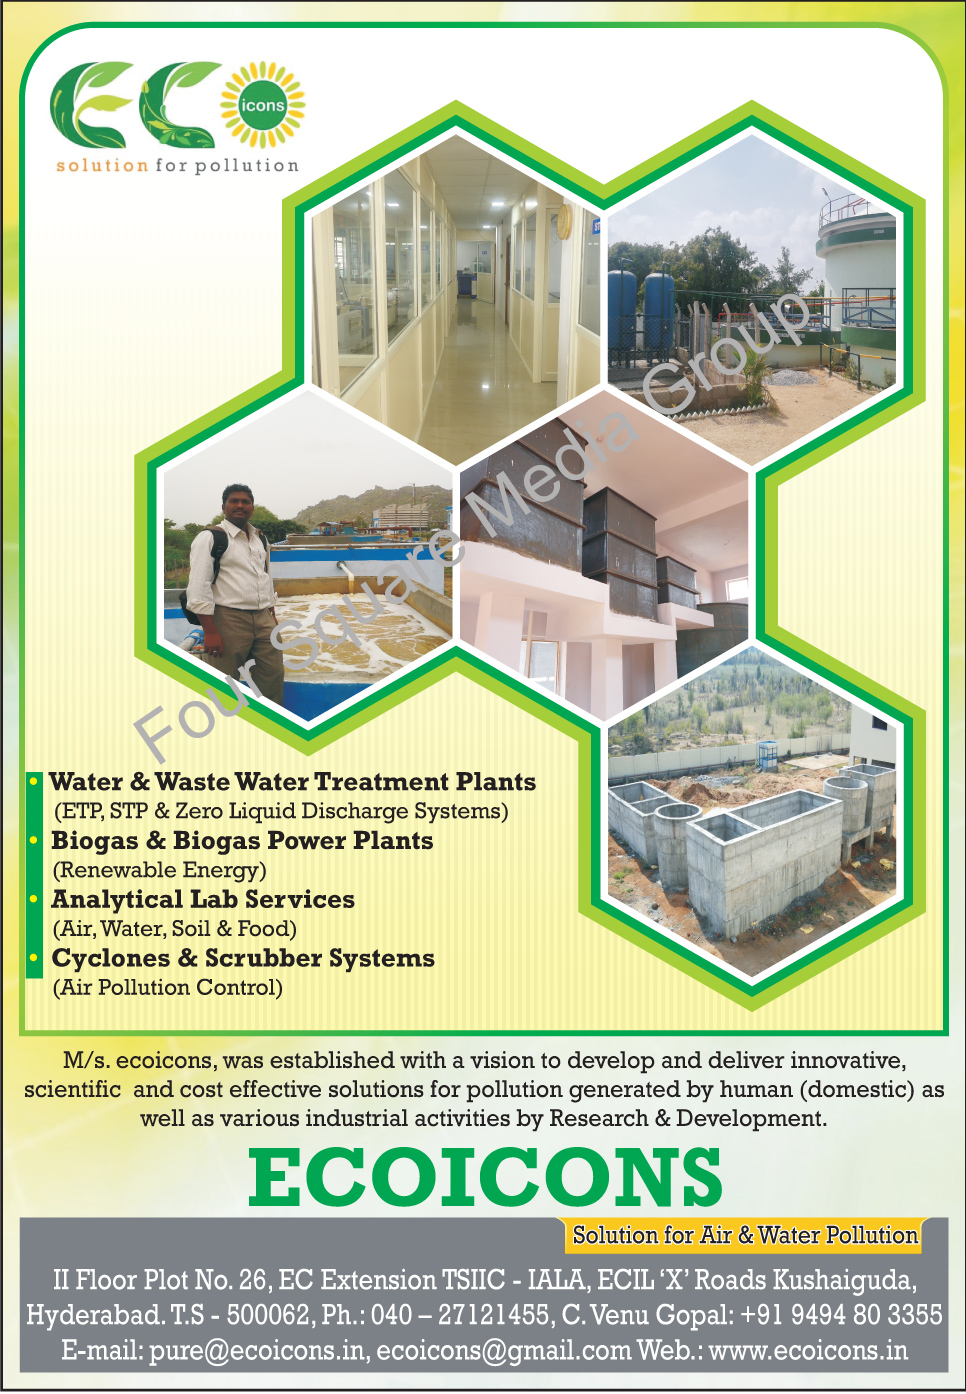 Water Treatment Plants, Waste Water Treatment Plants, ETP, STP, Zero Liquid Discharge Systems, Renewable Energy System, Biogas Power Plants, Analytical Lab Services, Air Pollution Control Systems, Water Testing Services, Soil Testing Services, Food Testing Services, Cyclone Filter Systems, Air Scrubber Systems, Air Monitoring Services